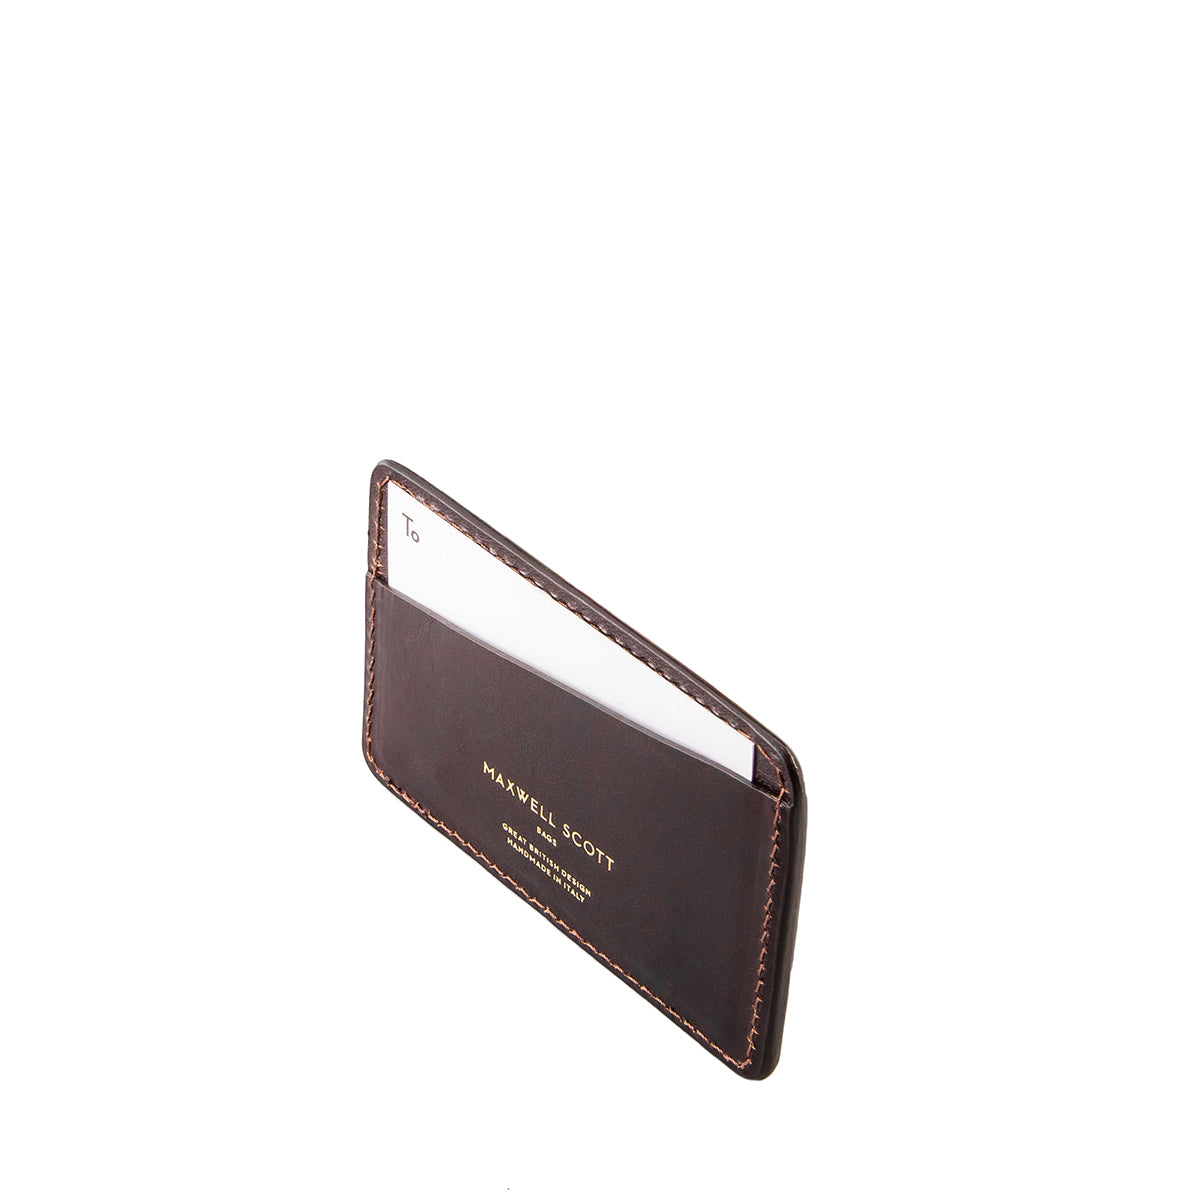 Image 4 of the 'Max' Luxury Brown Leather Card Case